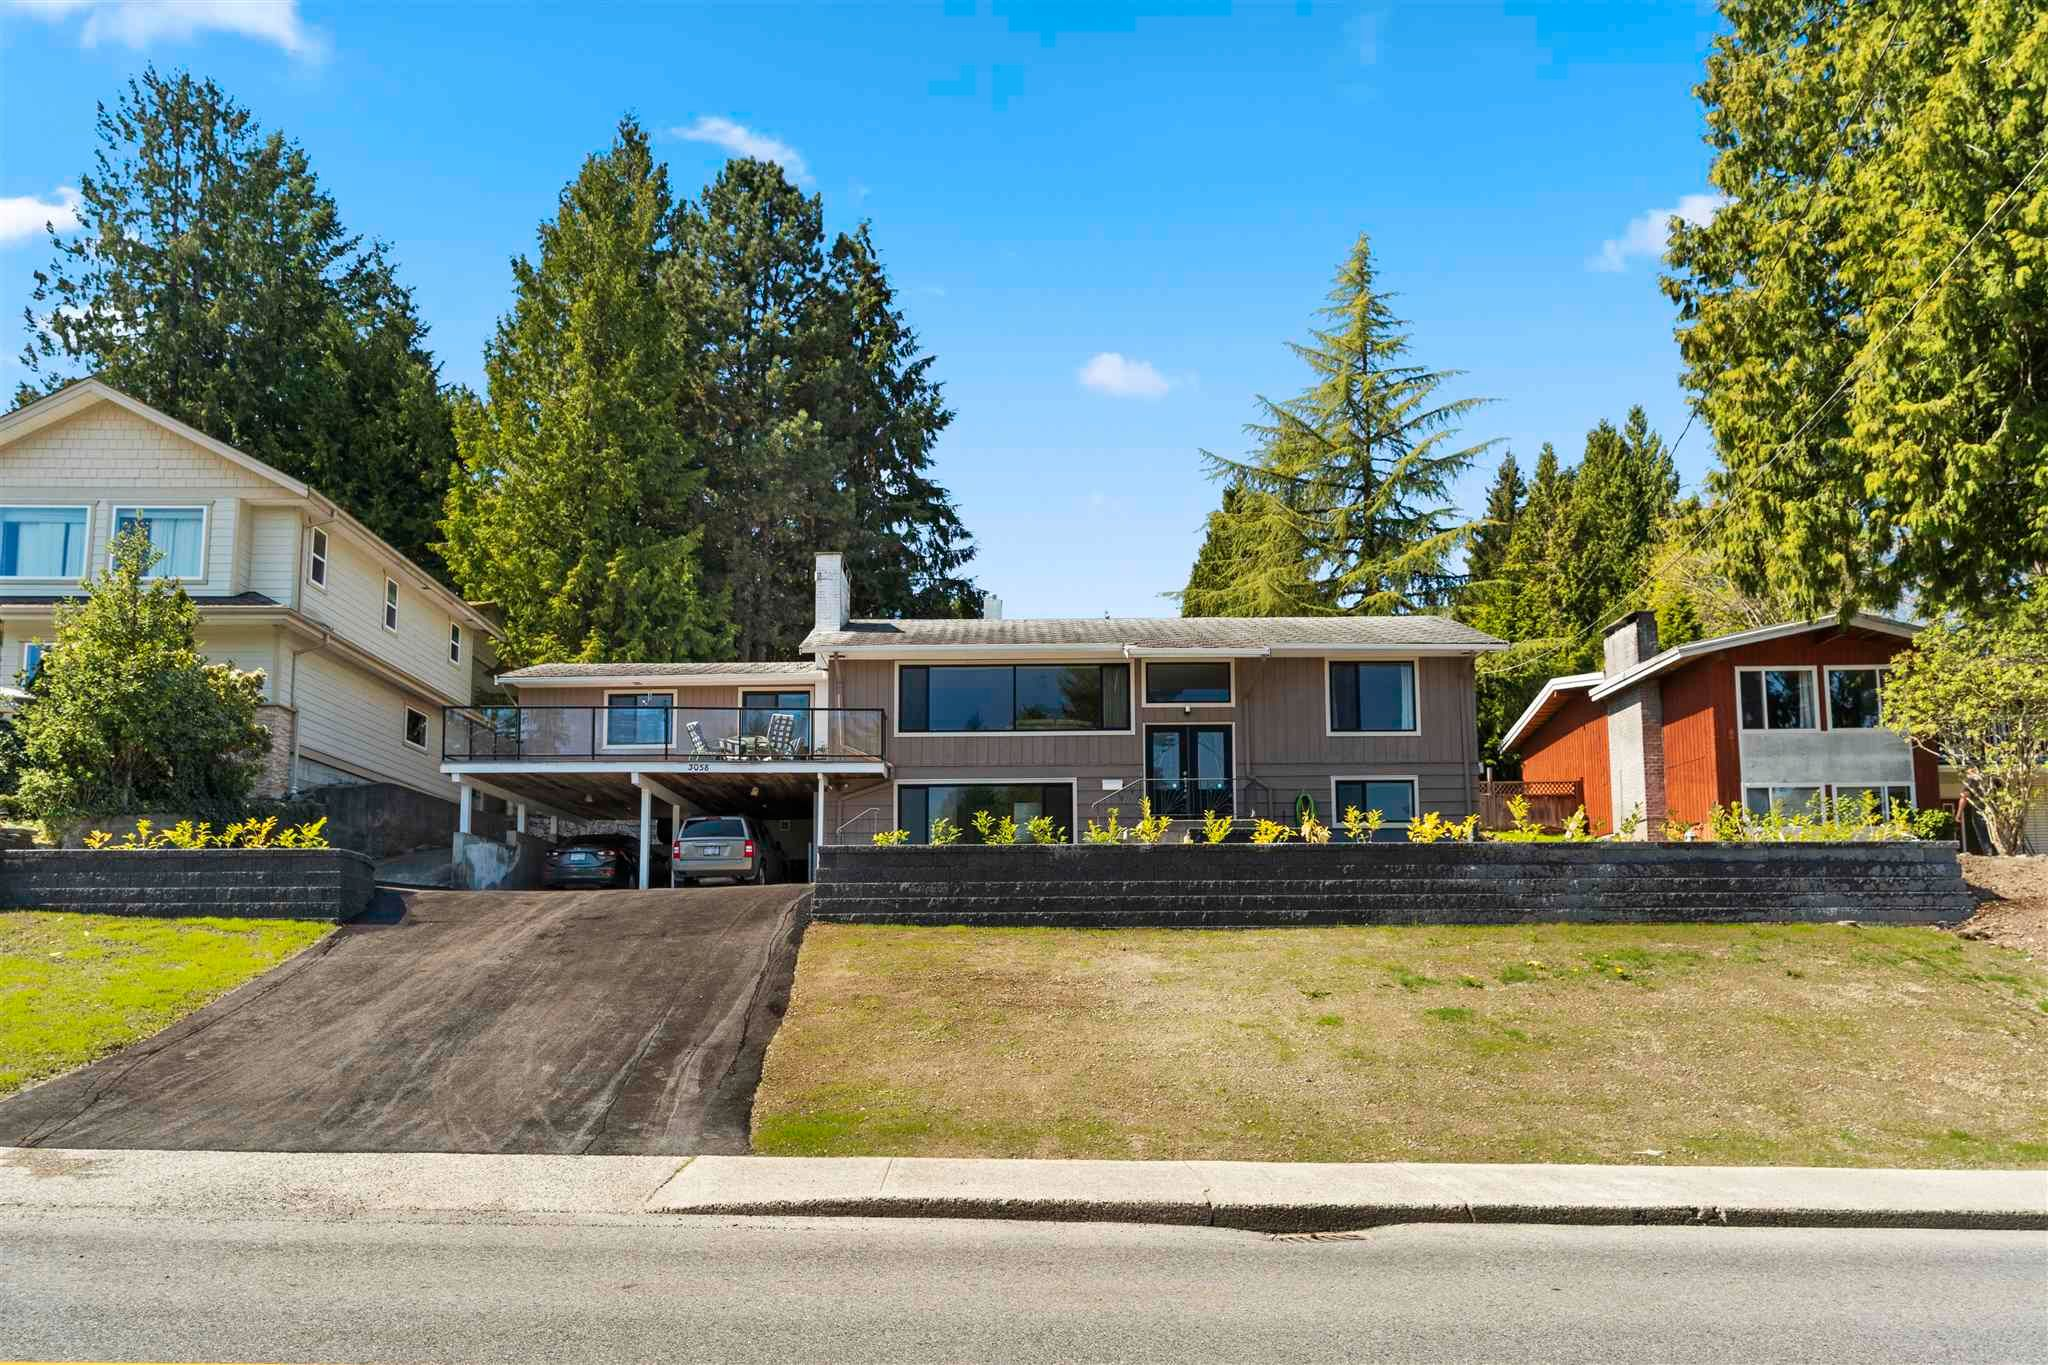 Main Photo: 3058 SPURAWAY Avenue in Coquitlam: Ranch Park House for sale : MLS®# R2599468